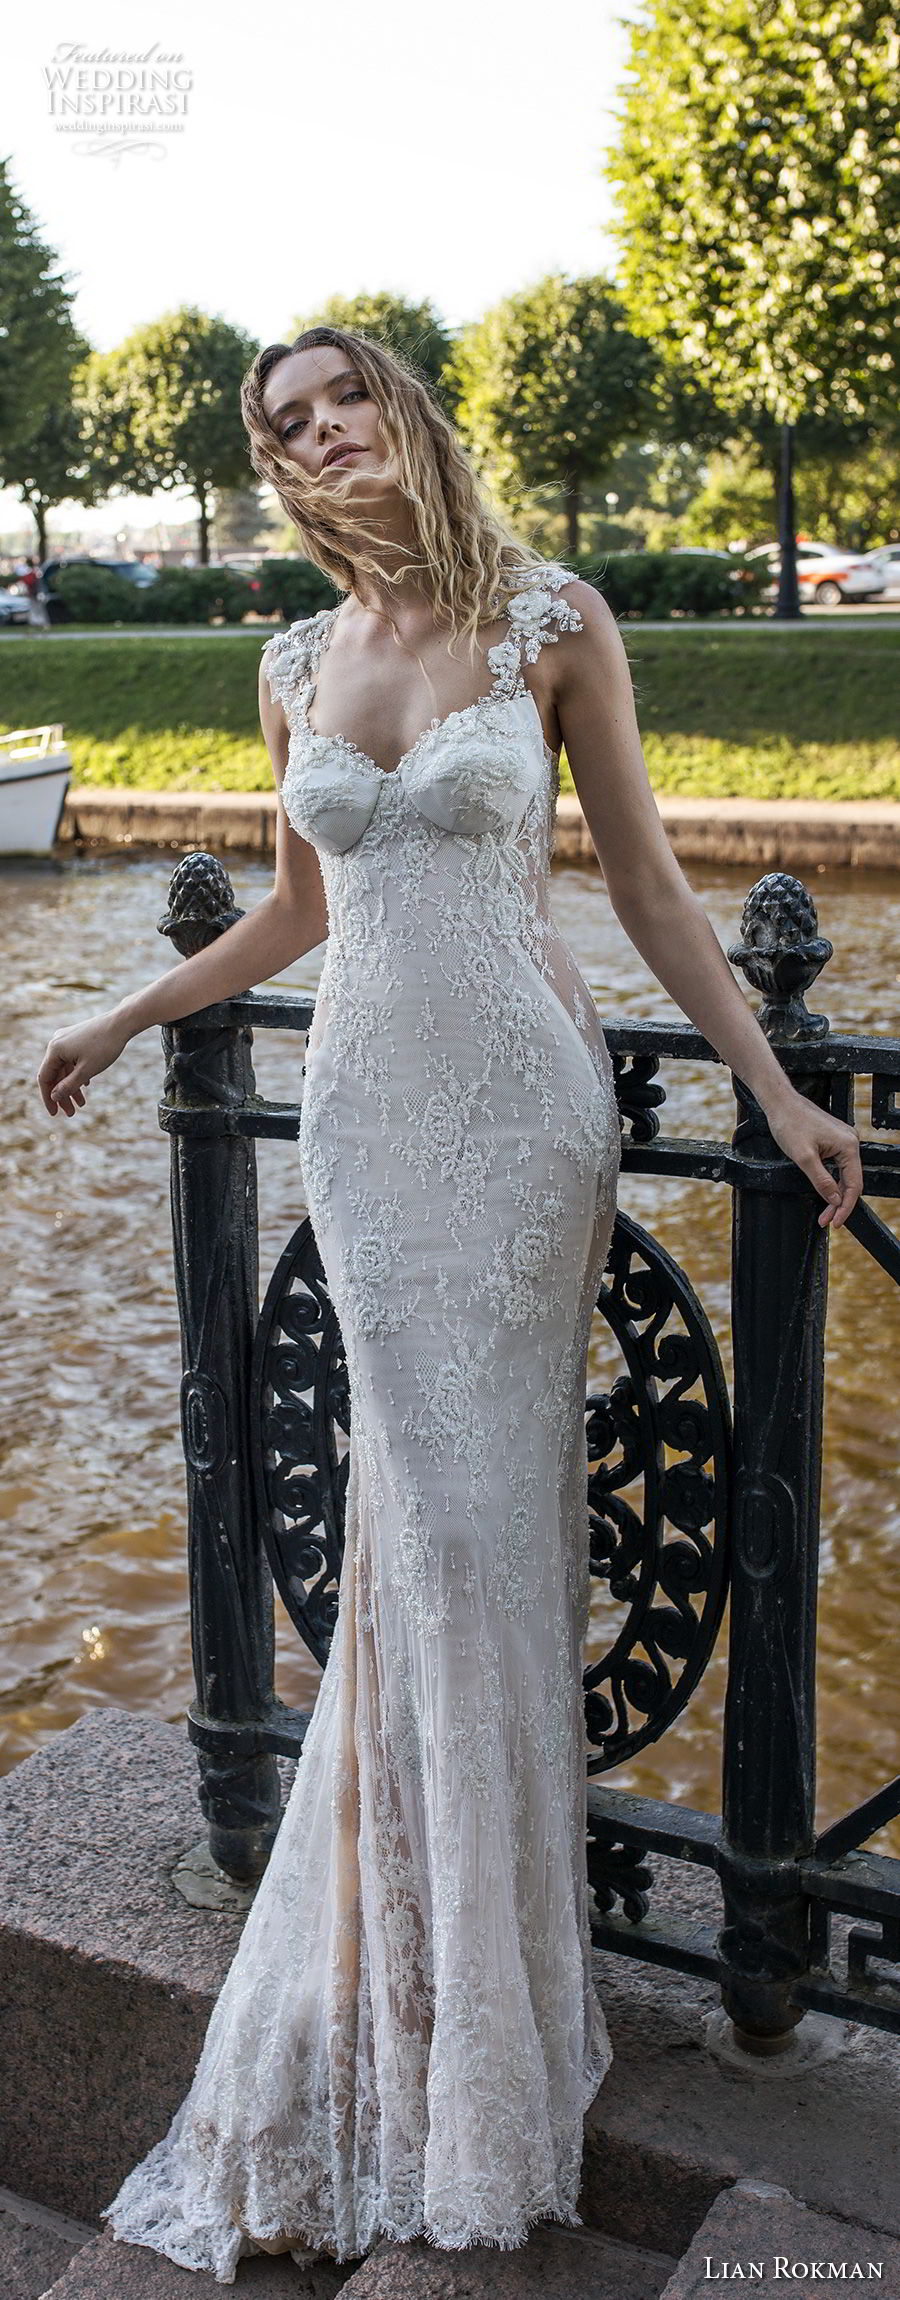 lian rokman 2018 bridal thick strap sweetheart neckline full embellishment buster elegant fit and flare sheath wedding dress low open back sweep train (11) mv